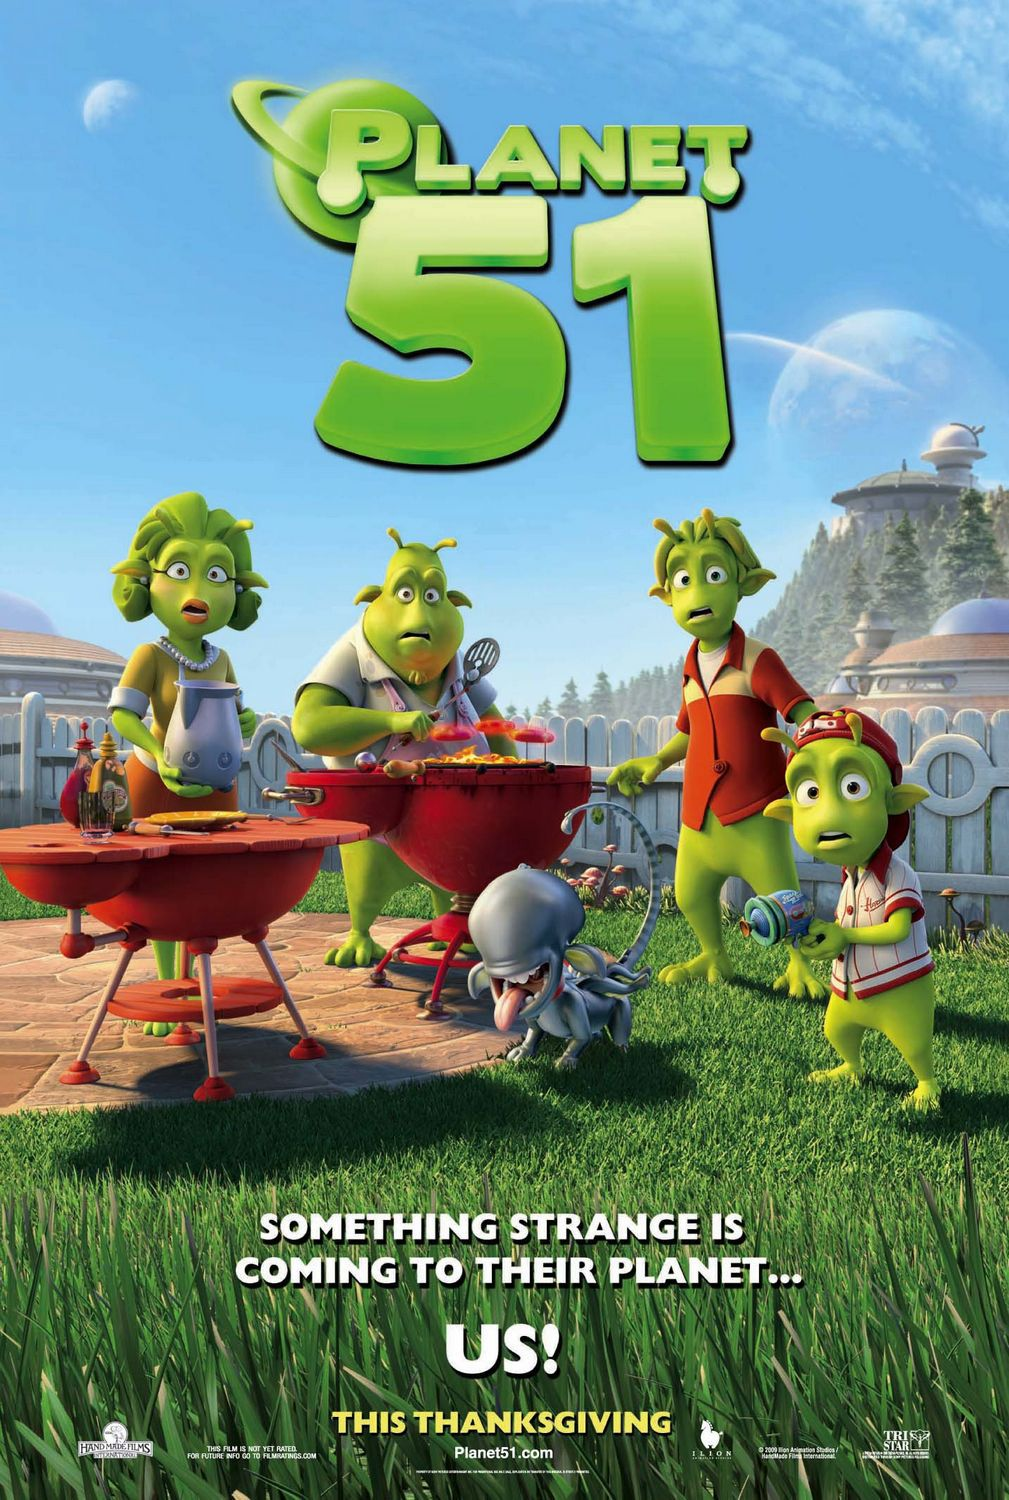 Planet 51 - alien barbecue